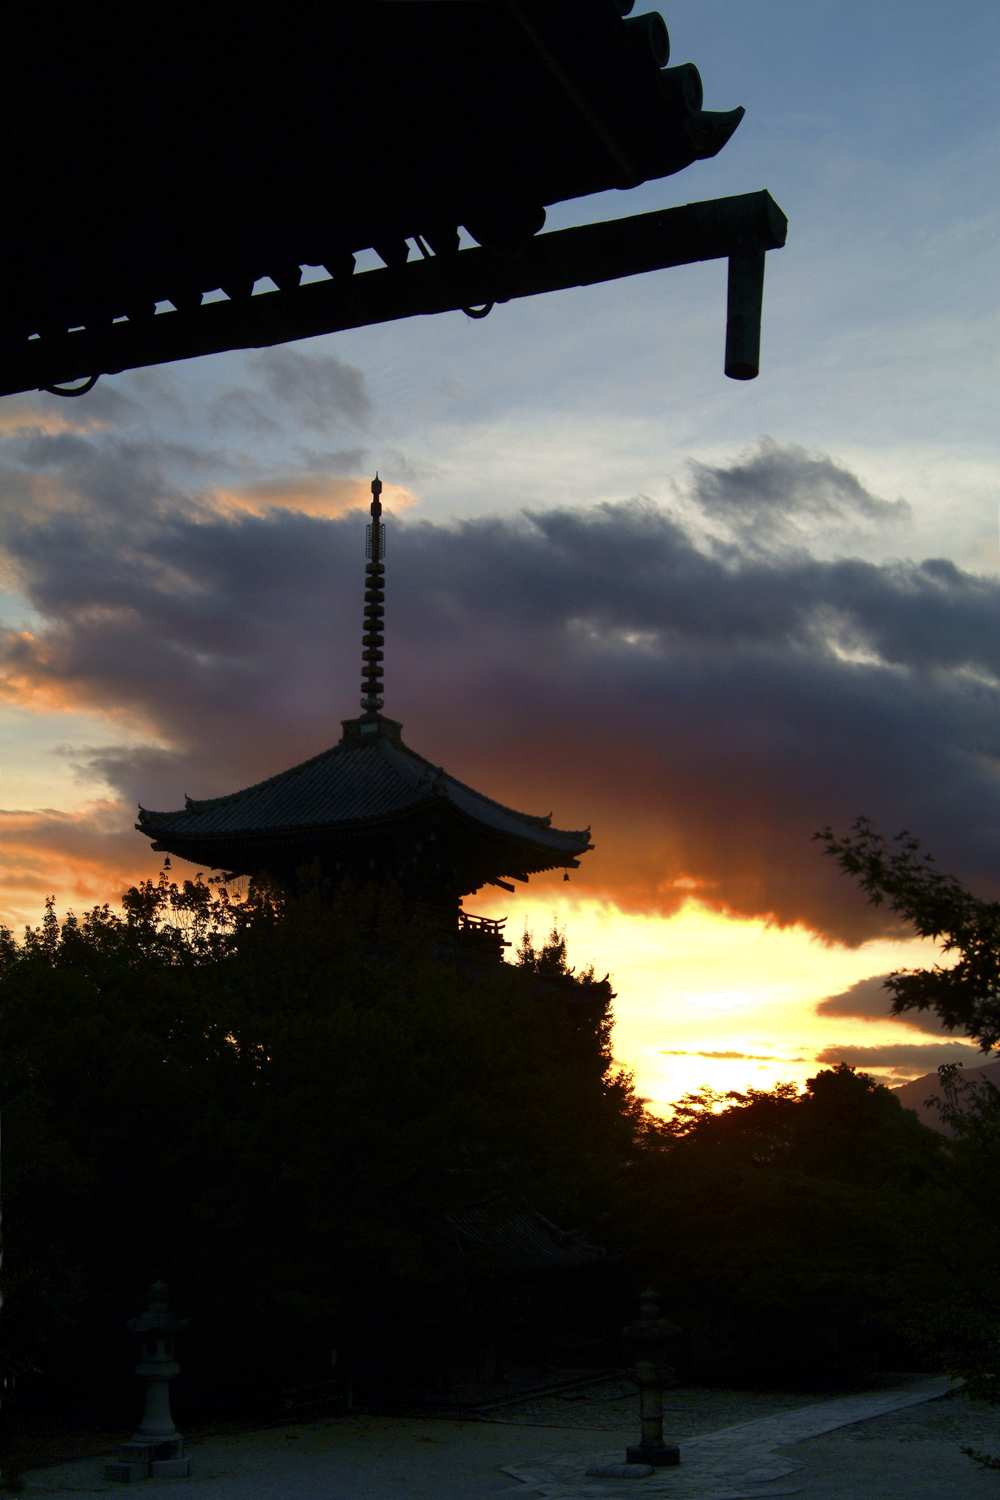 Sunset at Shinnyodo Temple